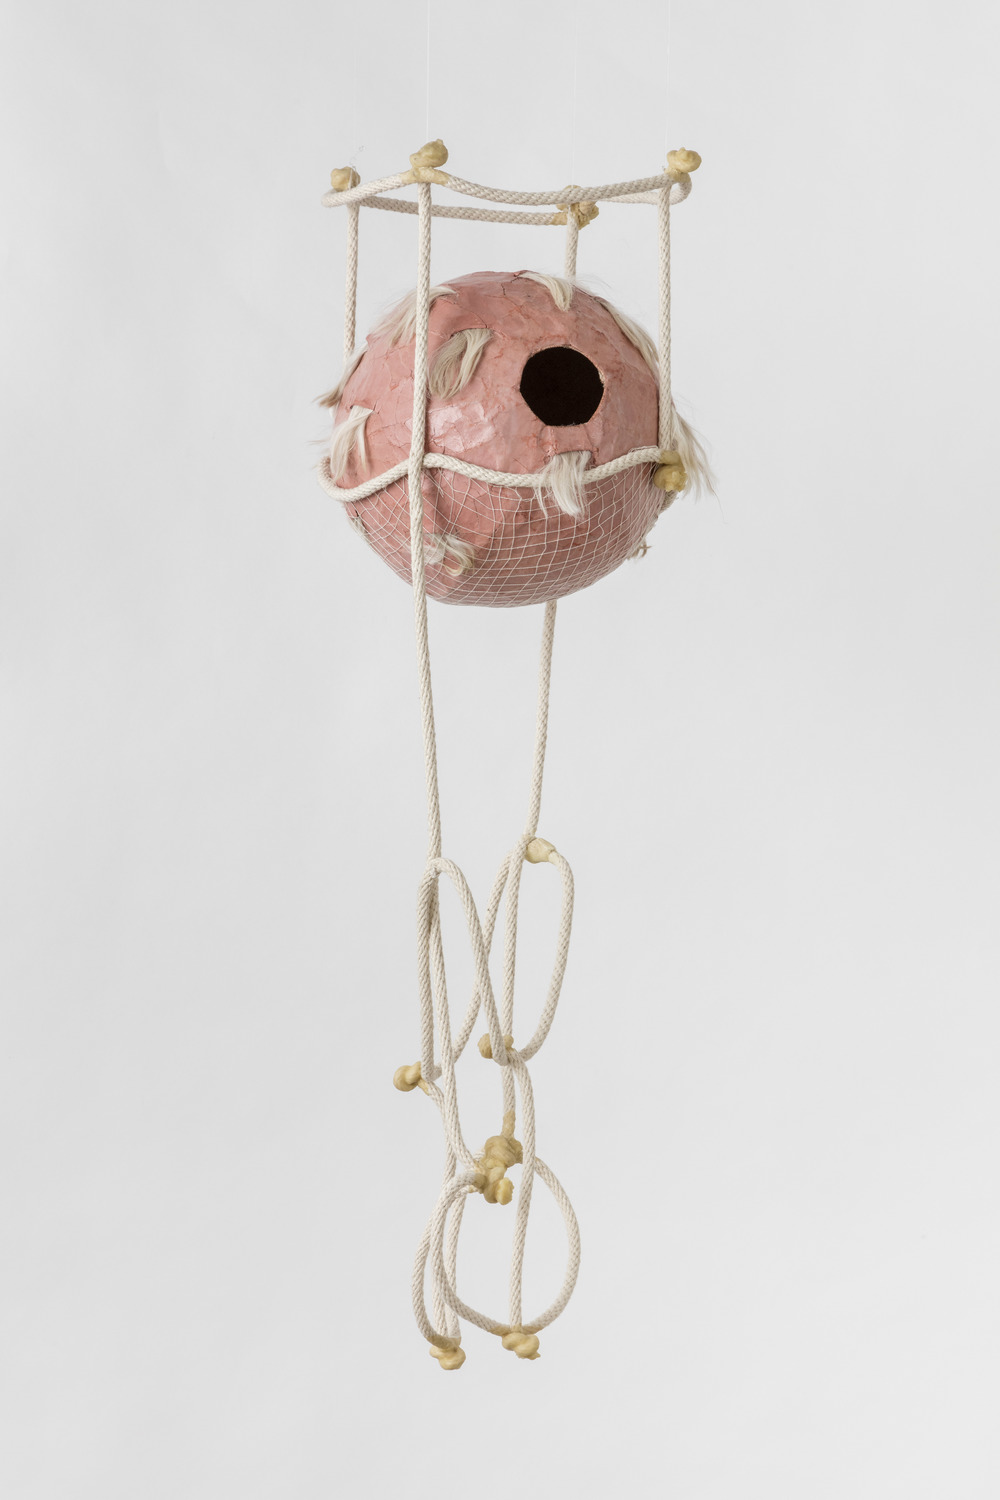 Tanya Aguiniga   Gynic Dispossession 2 , 2016  Cotton rope, cotton thread, canvas, self-drying clay, alpaca and beeswax  32 x 12 x 12 inches